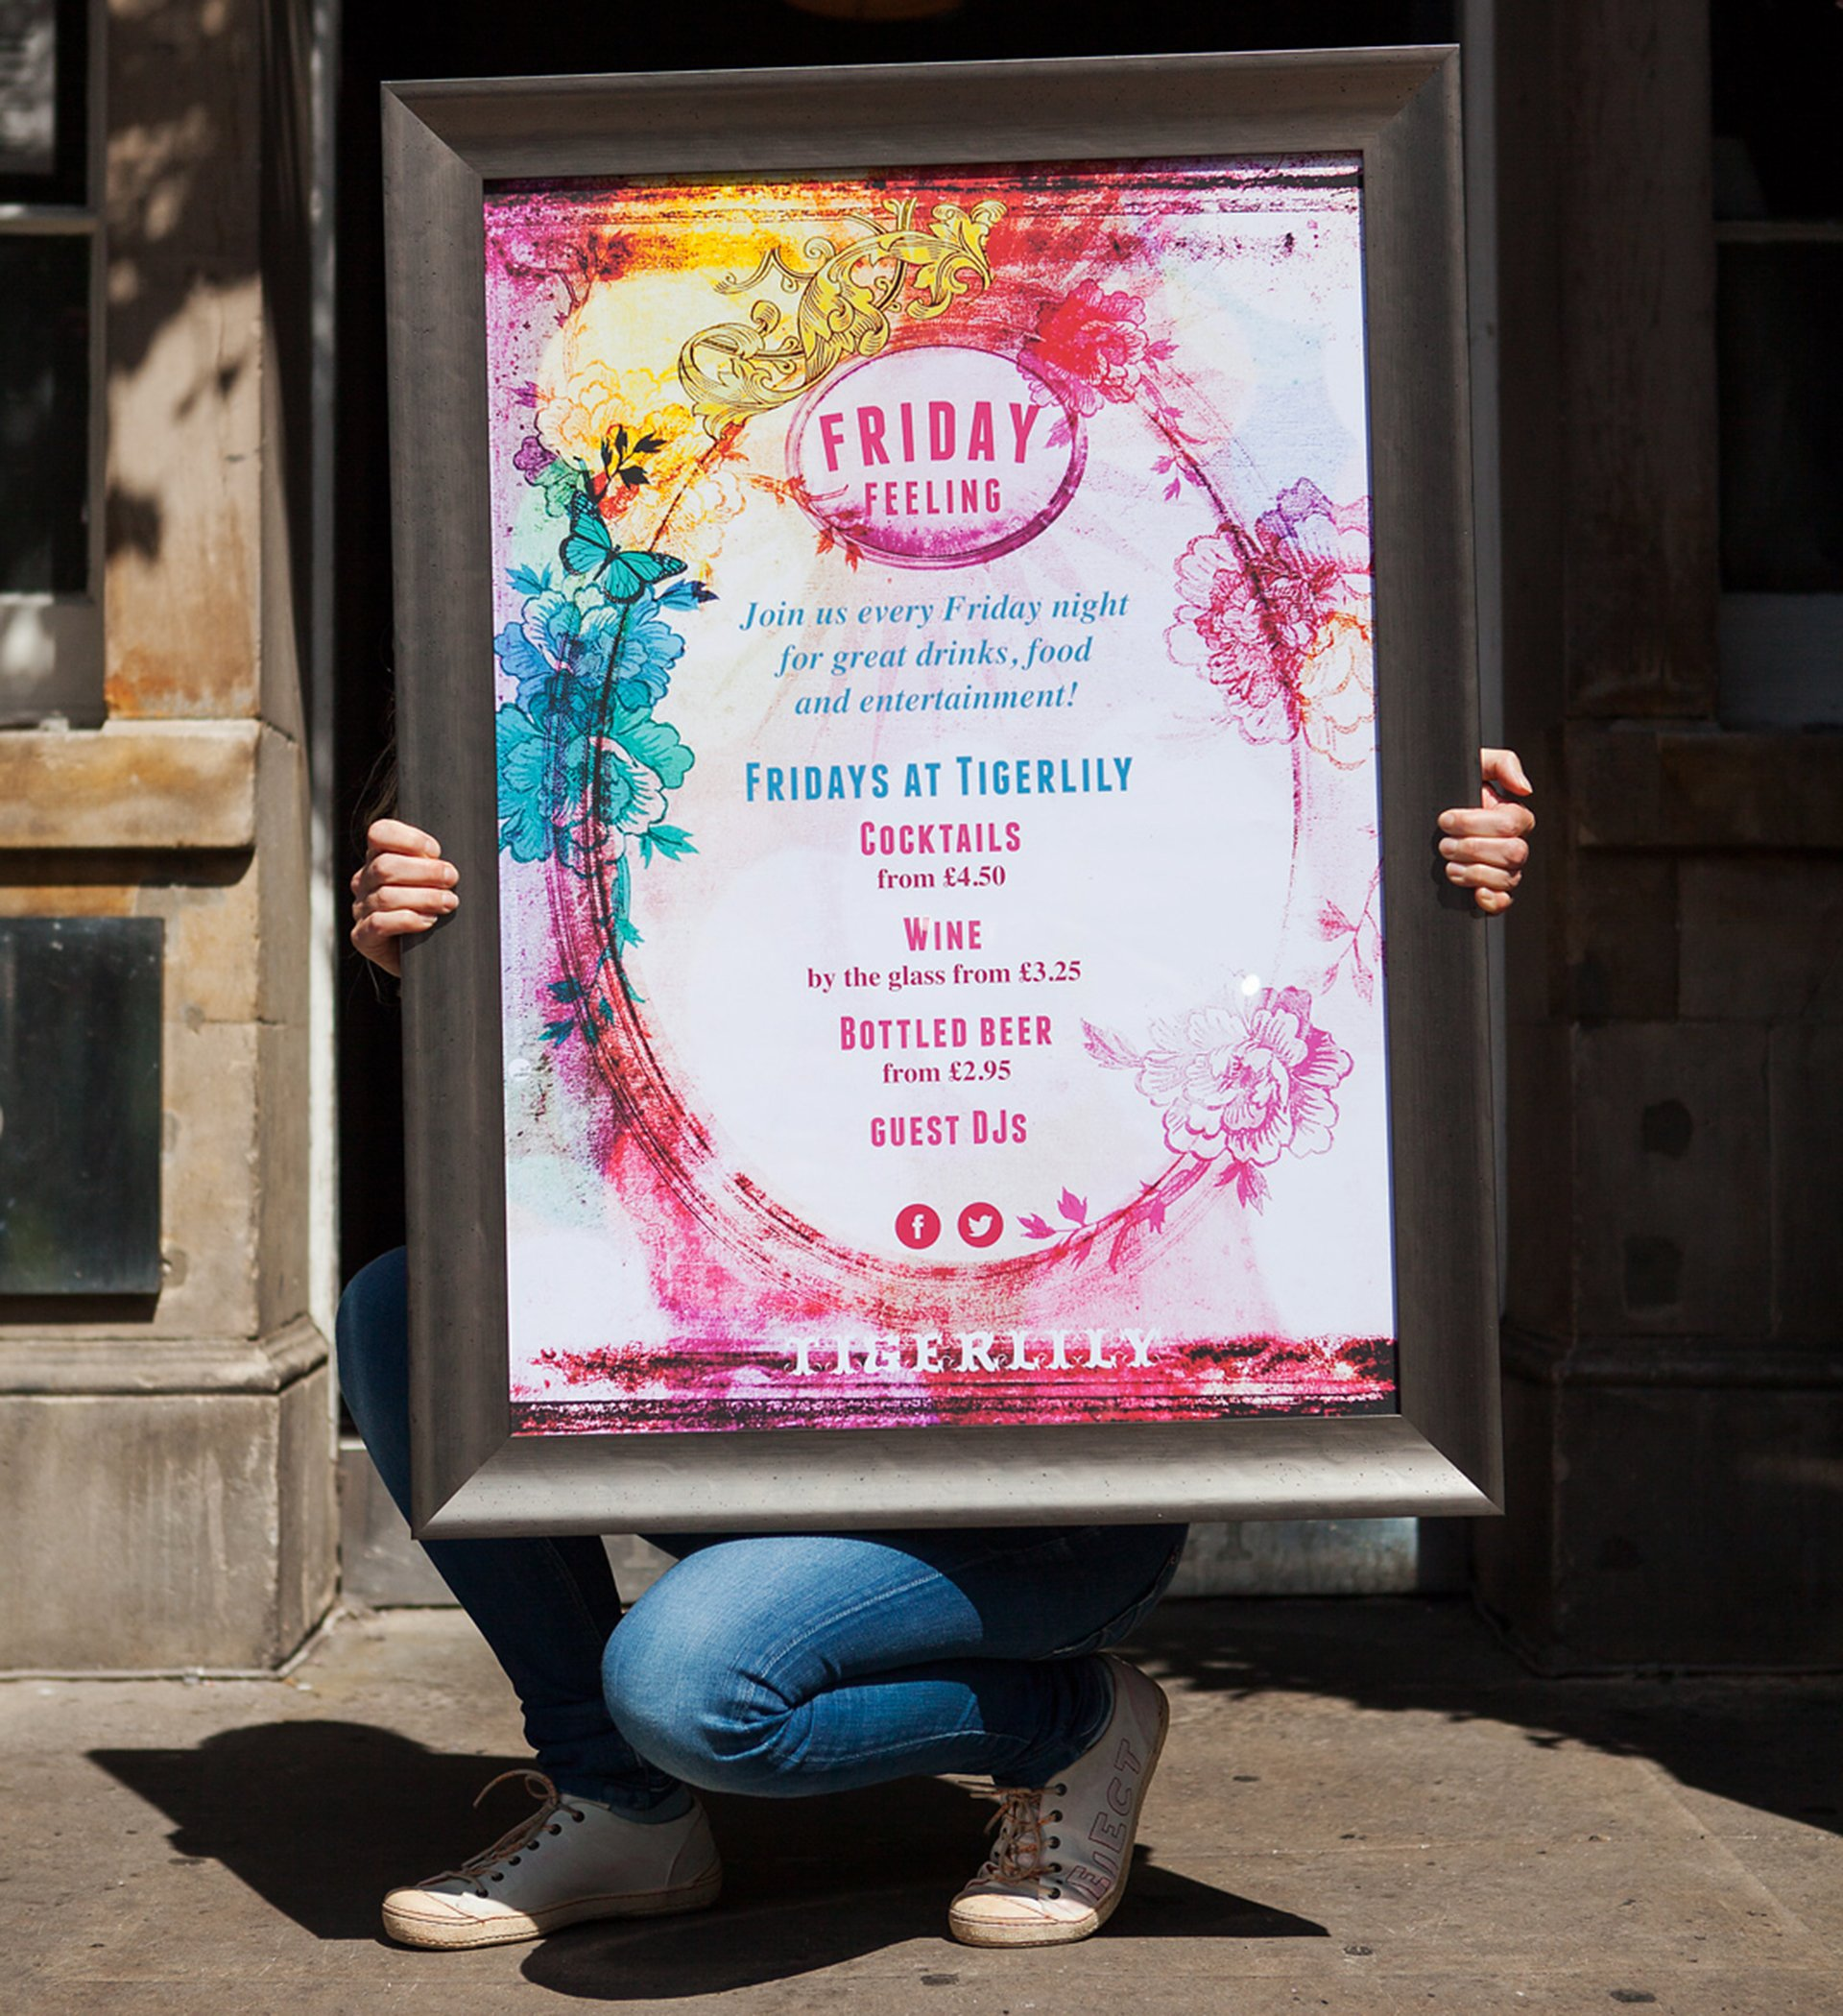 Poster for Tigerlily Edinburgh's 'Friday Feeling' showing cocktail offers and drinks deals